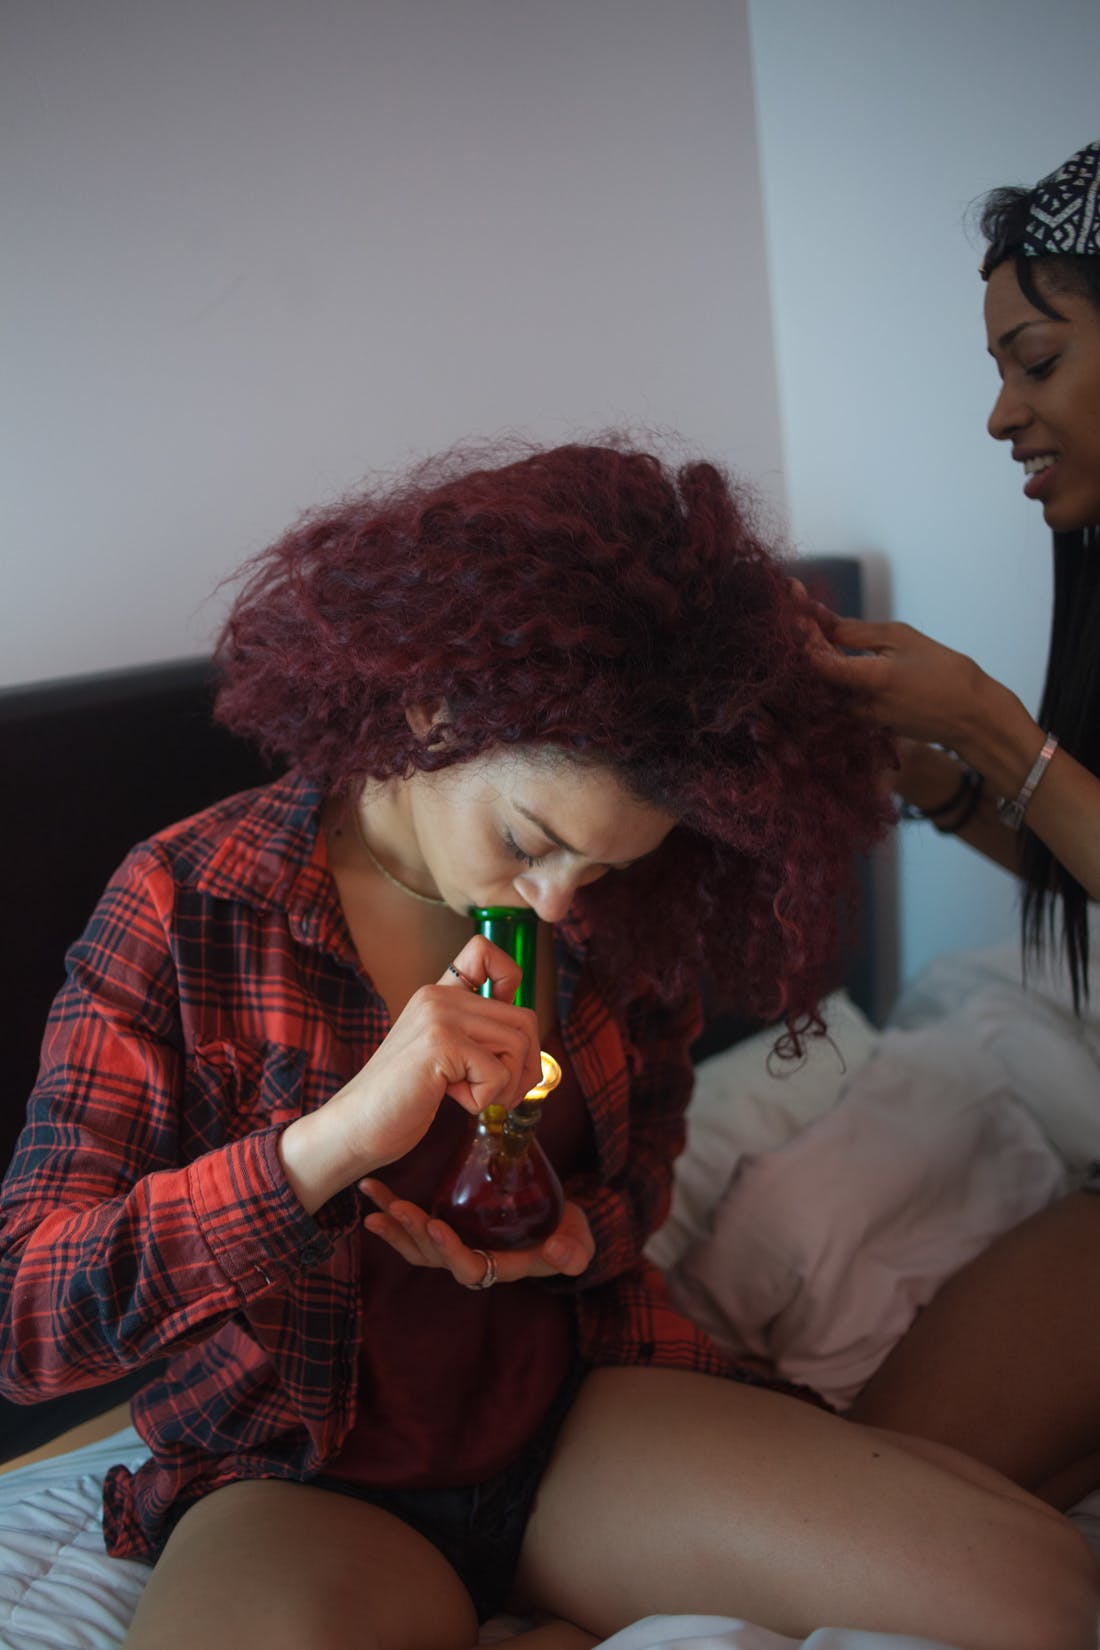 Friends wmoking weed are the best 1 of 1 Grab your weed, grab your snacks, theres going to be a Lord Of The Rings TV series